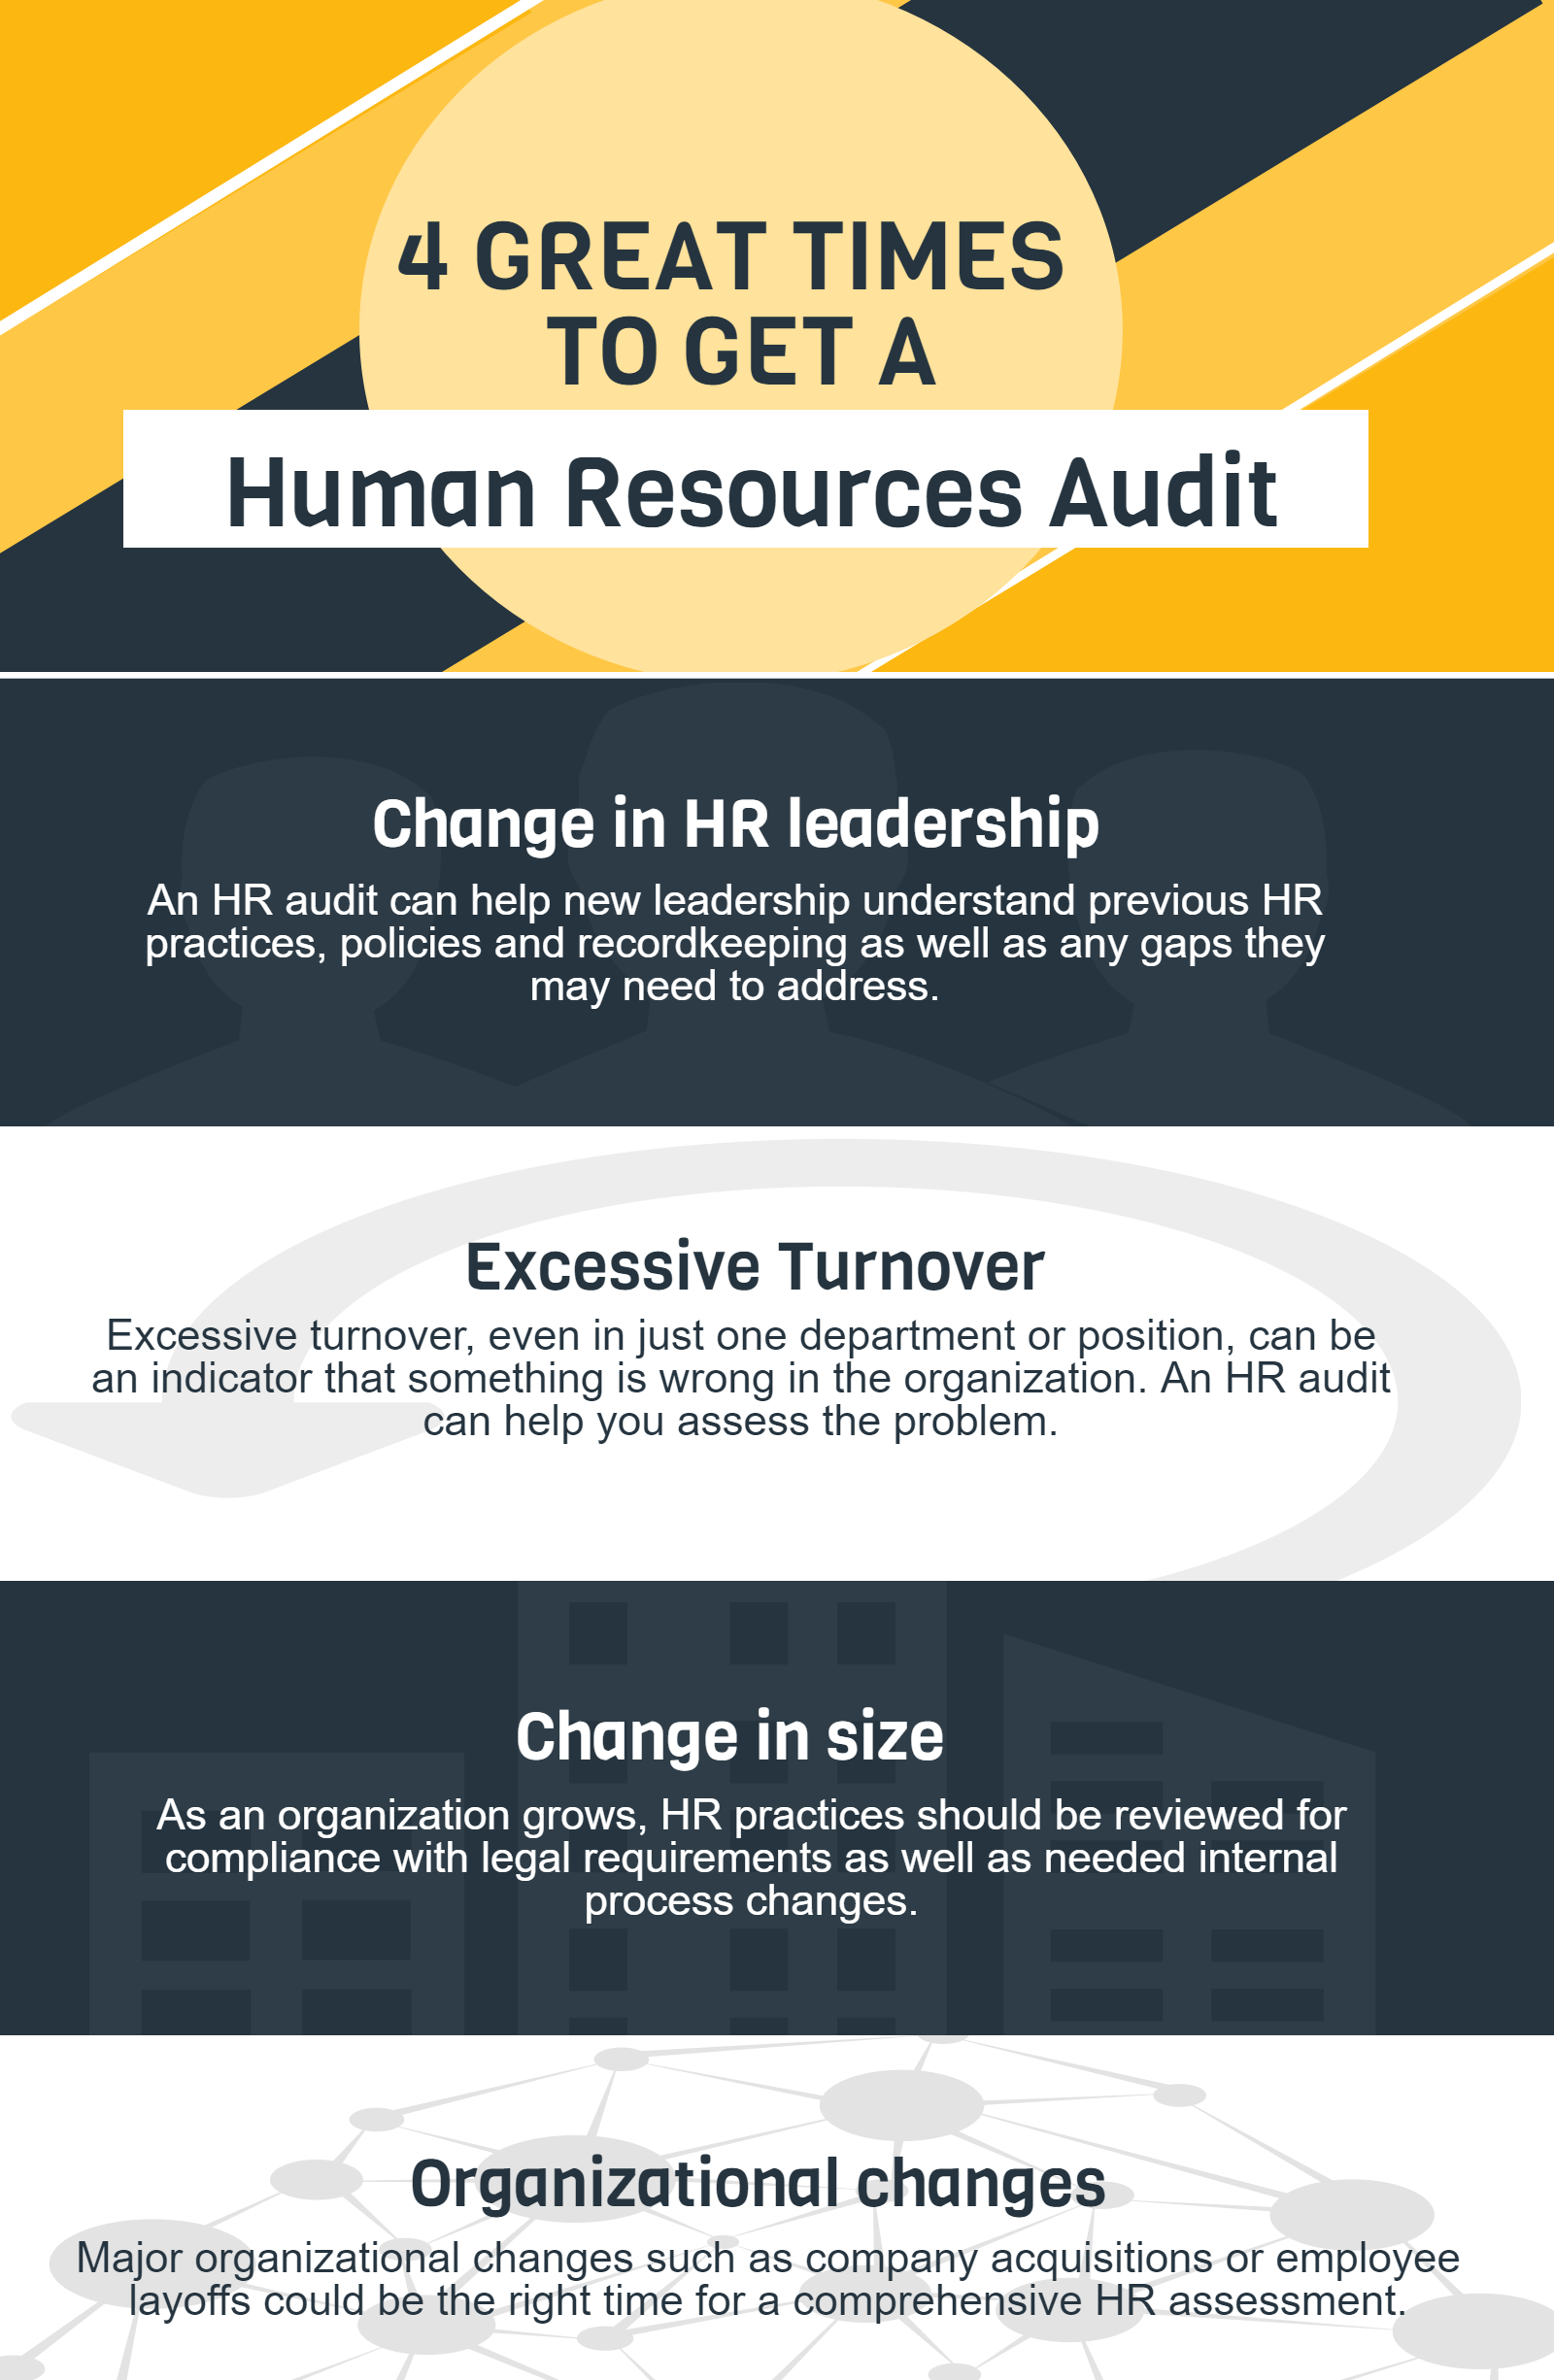 4 great times to get an HR audit infographic